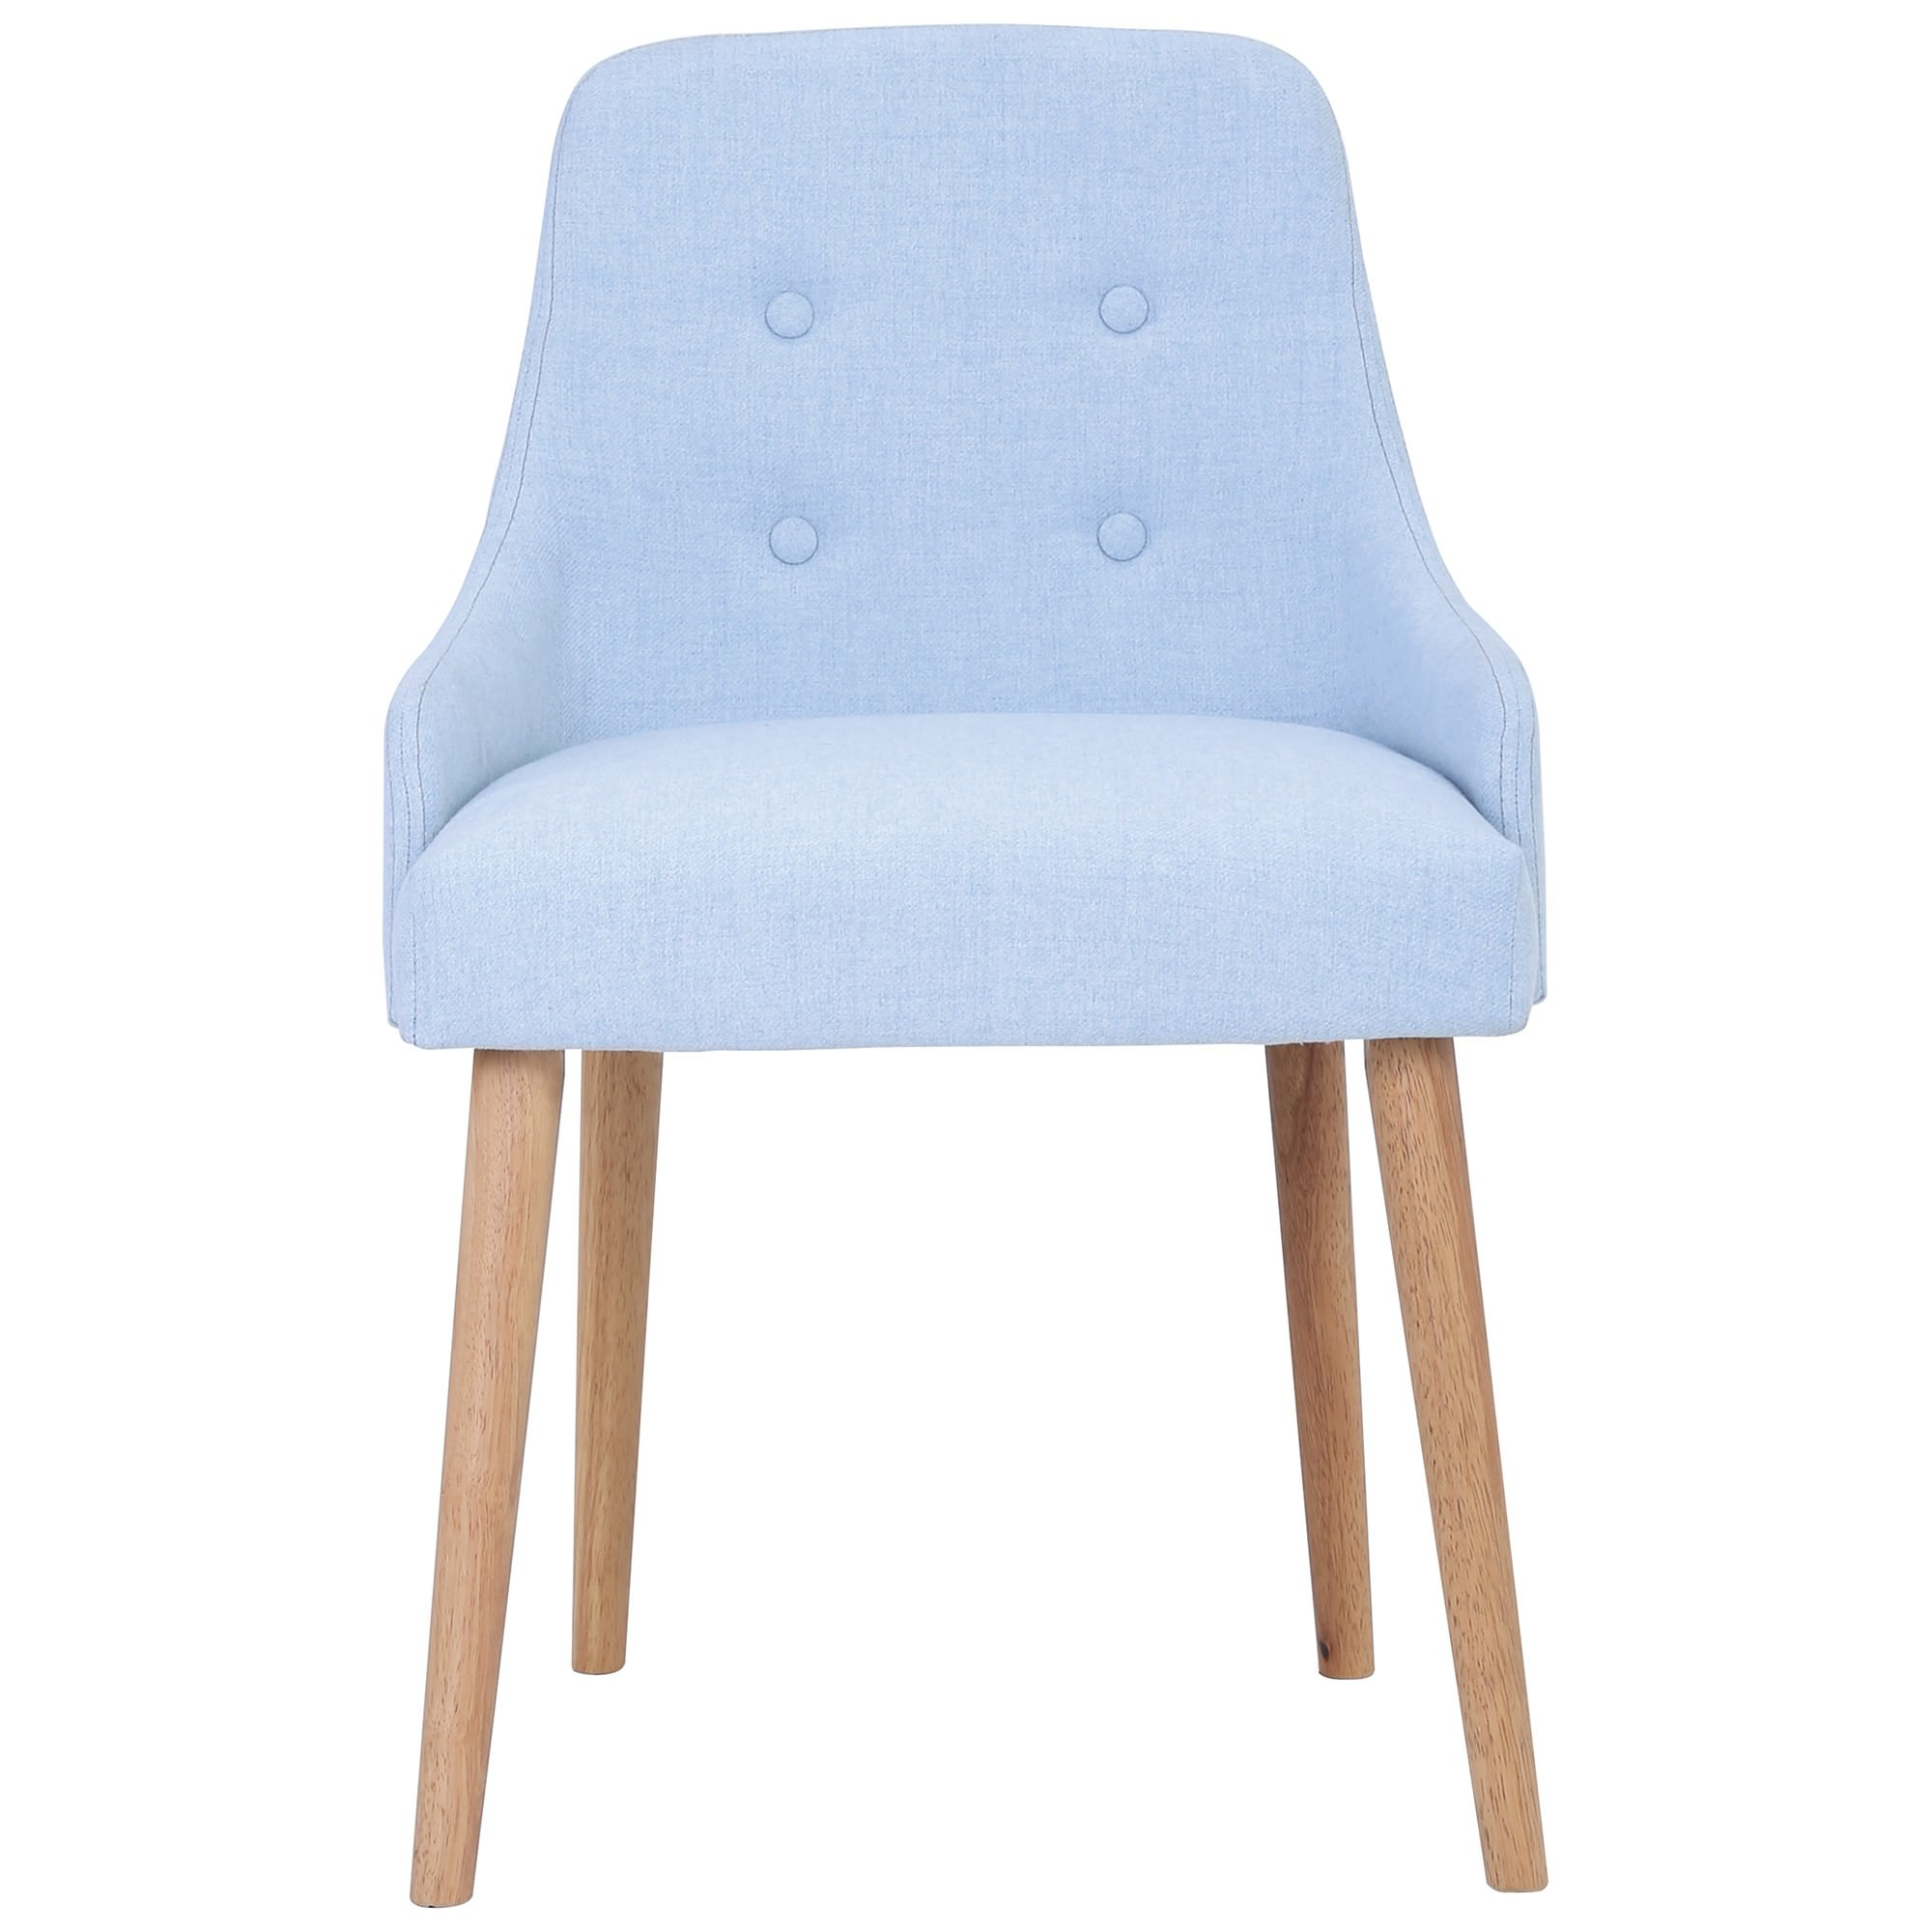 Caitlin Fabric Dining Chair, Pale Blue